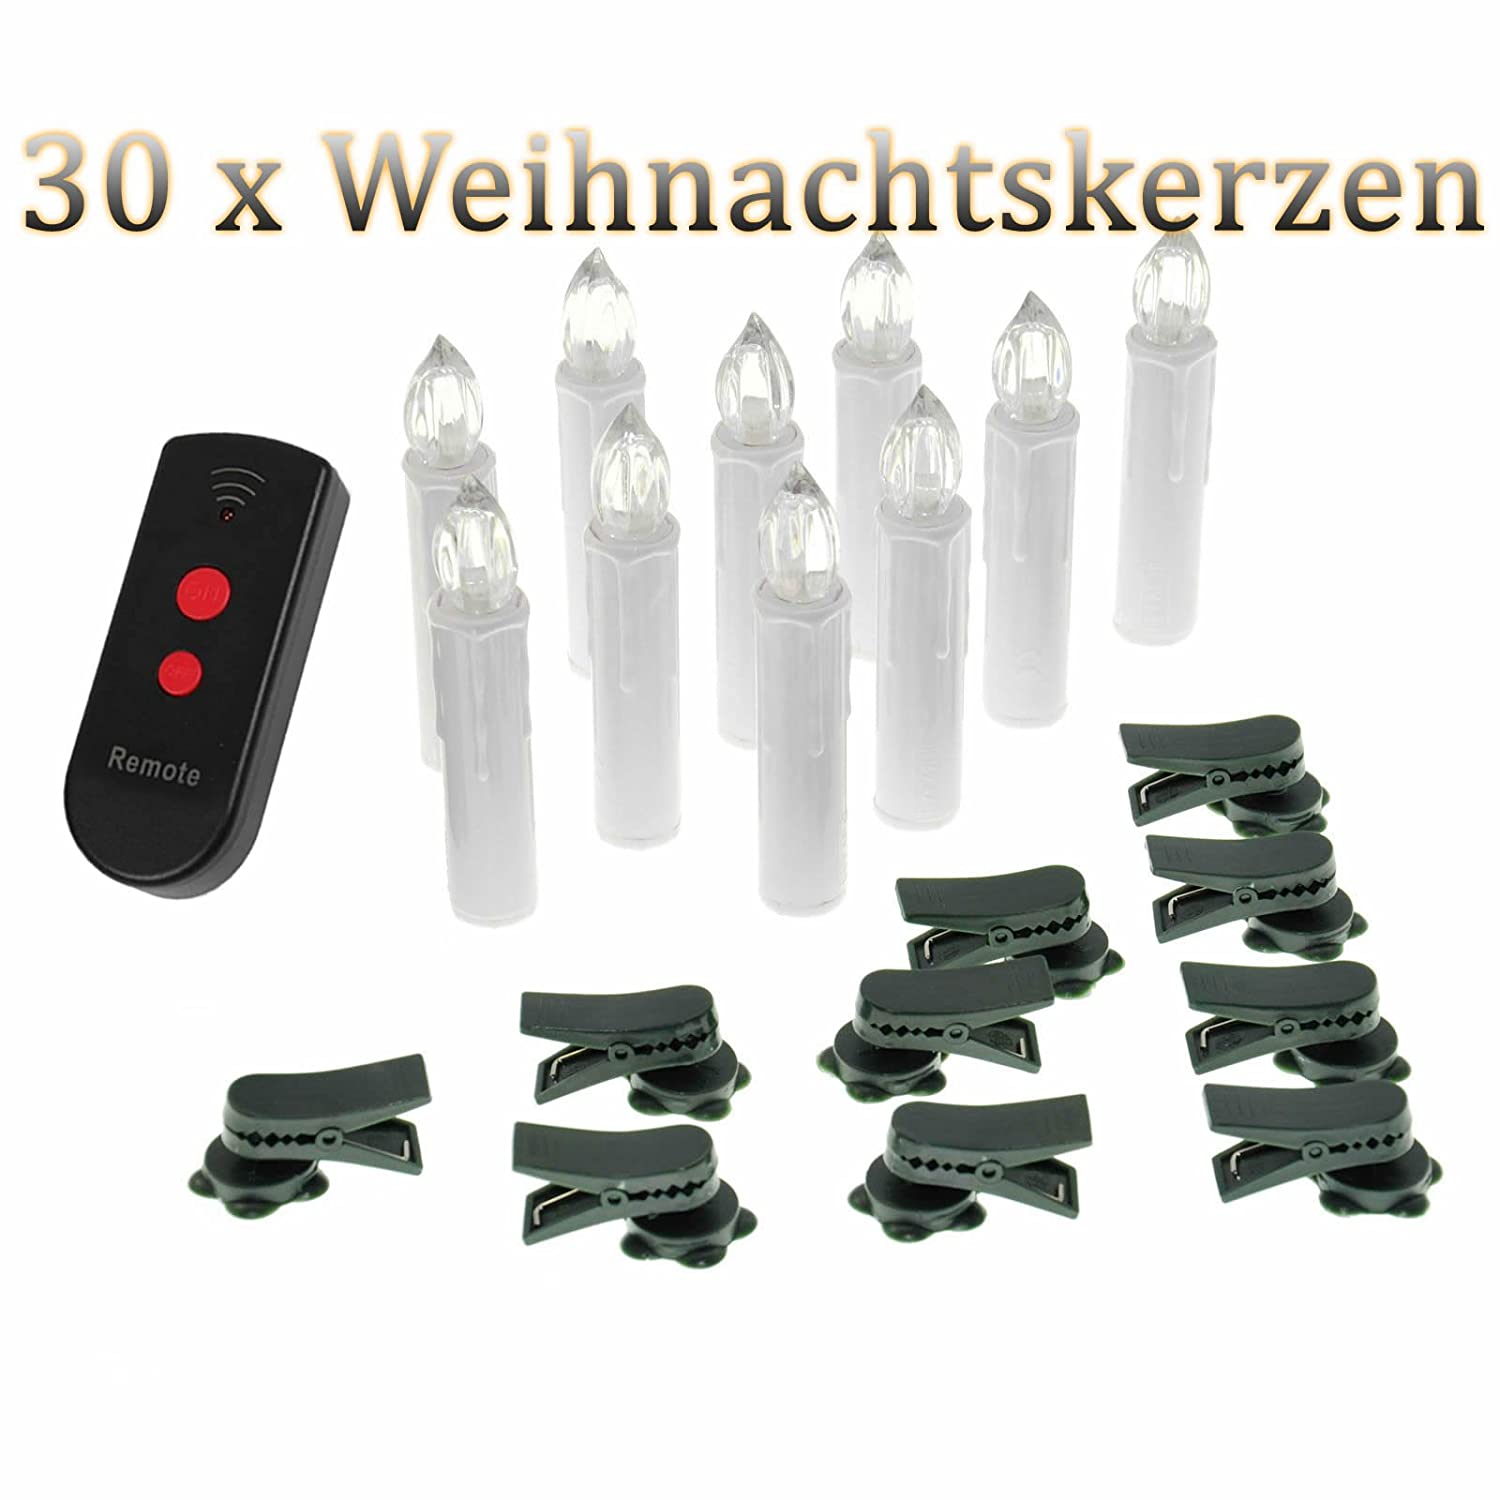 Kabellose led weihnachtsbeleuchtung mit fernbedienung my - Led weihnachtsbeleuchtung kabellos ...